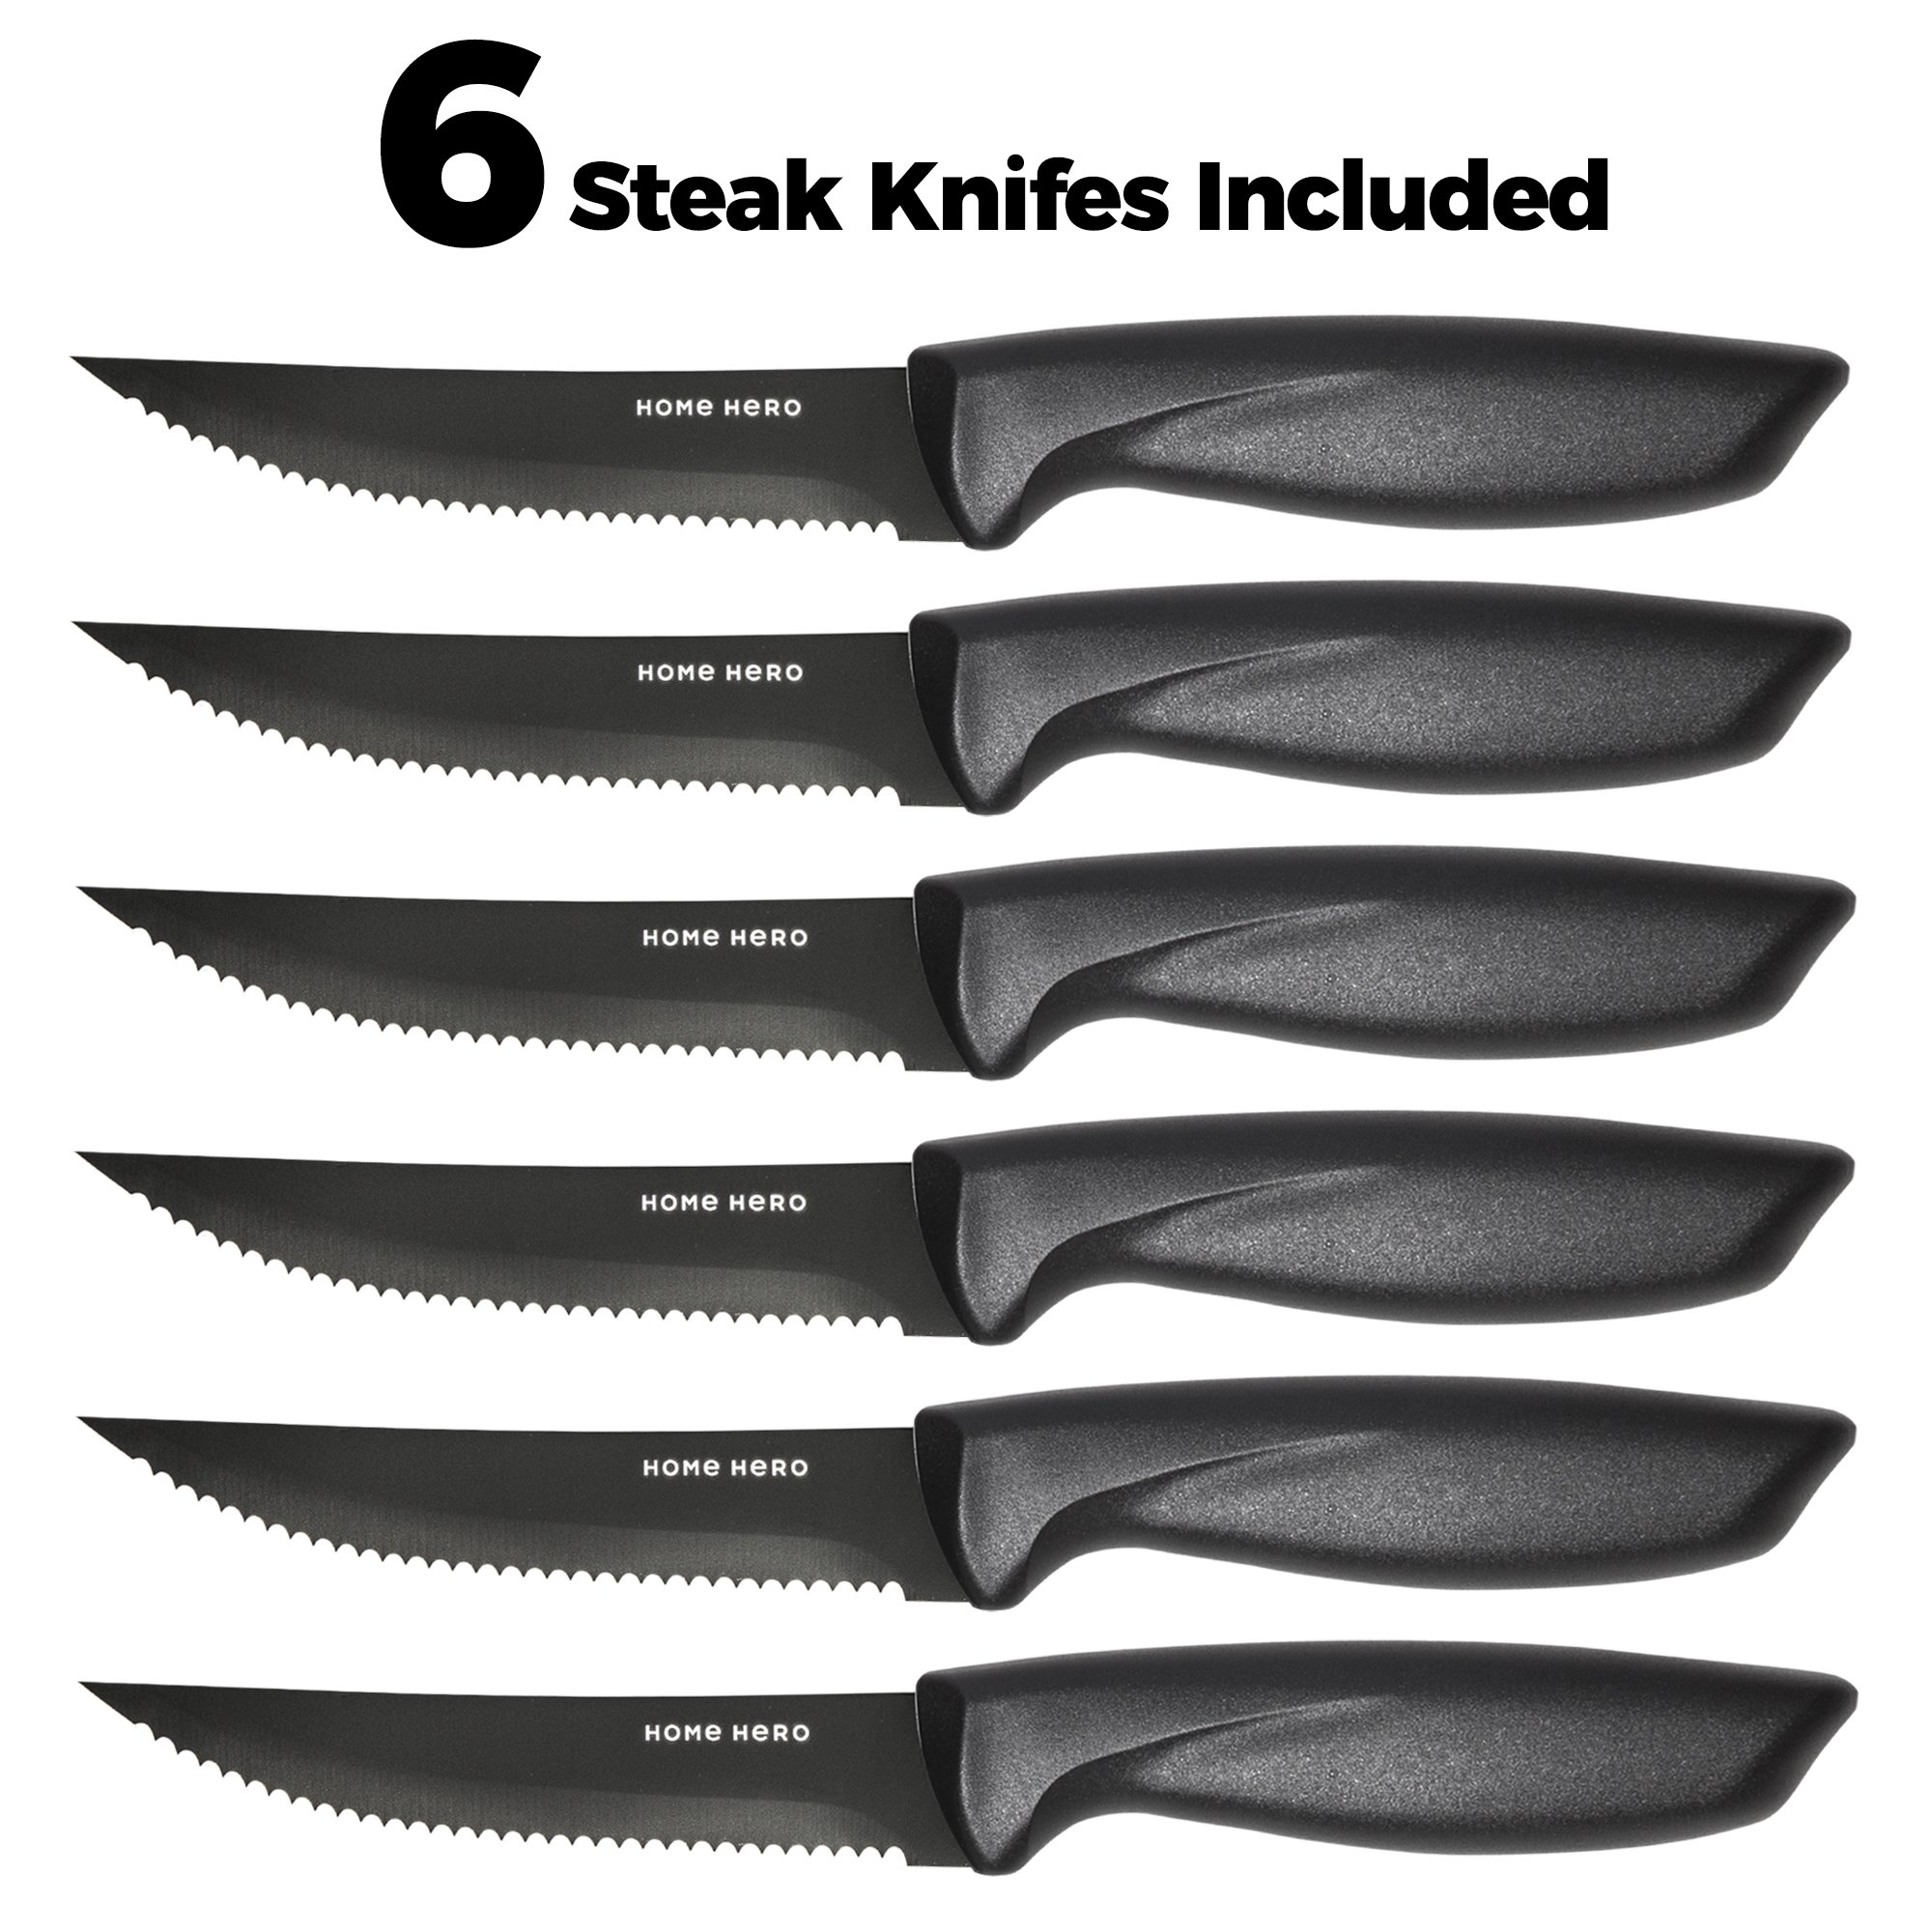 Stainless Steel Knife Set with Block - 13 Kitchen Knives Set Chef Knife Set with Knife Sharpener, 6 Steak Knives, Bonus Peeler Scissors Cheese Pizza Knife & Acrylic Stand - Best Cutlery Set Gift by Home Hero (Image #3)